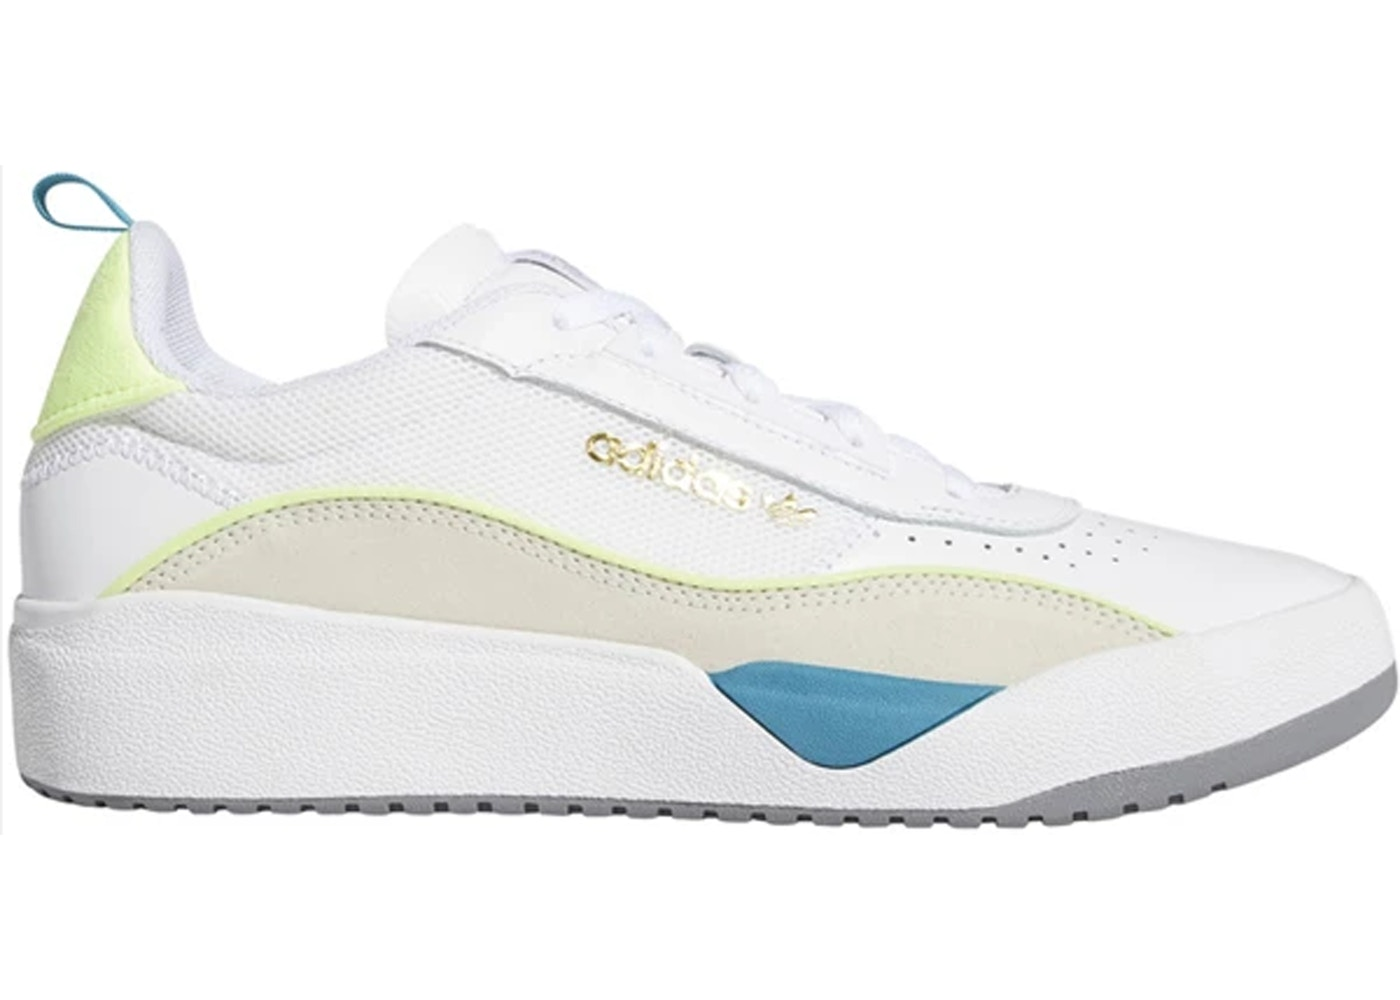 アディダス ADIDAS 白 ホワイト スニーカー 【 WHITE LIBERTY CUP HI RES YELLOW CLOUD CHALK HIRES 】 メンズ